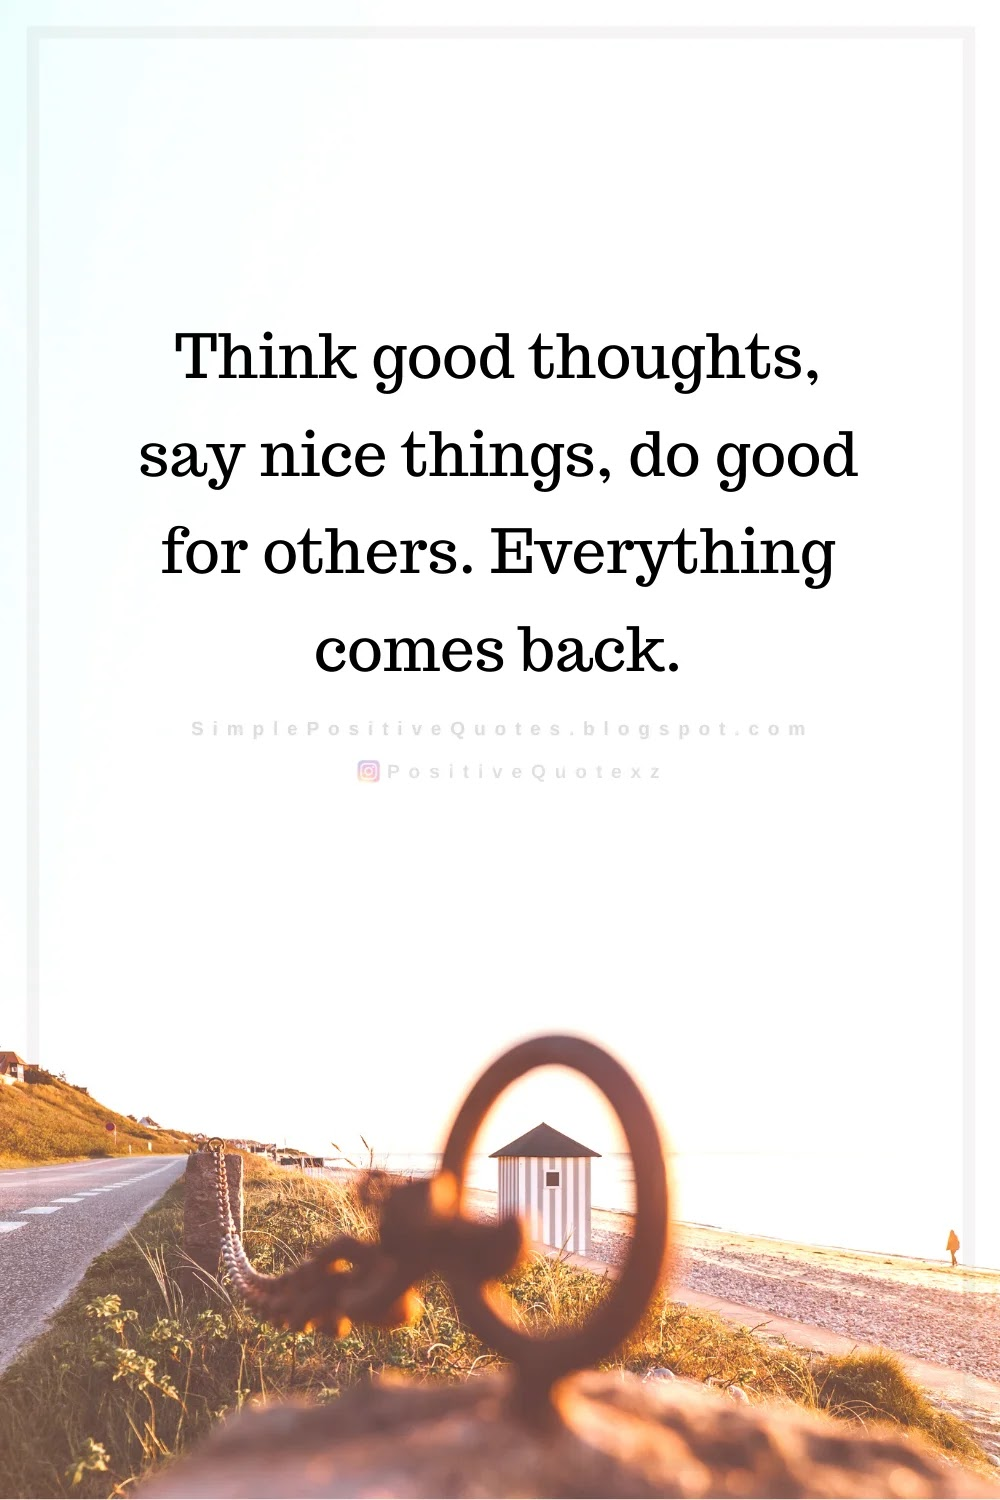 Simple Positive Quotes